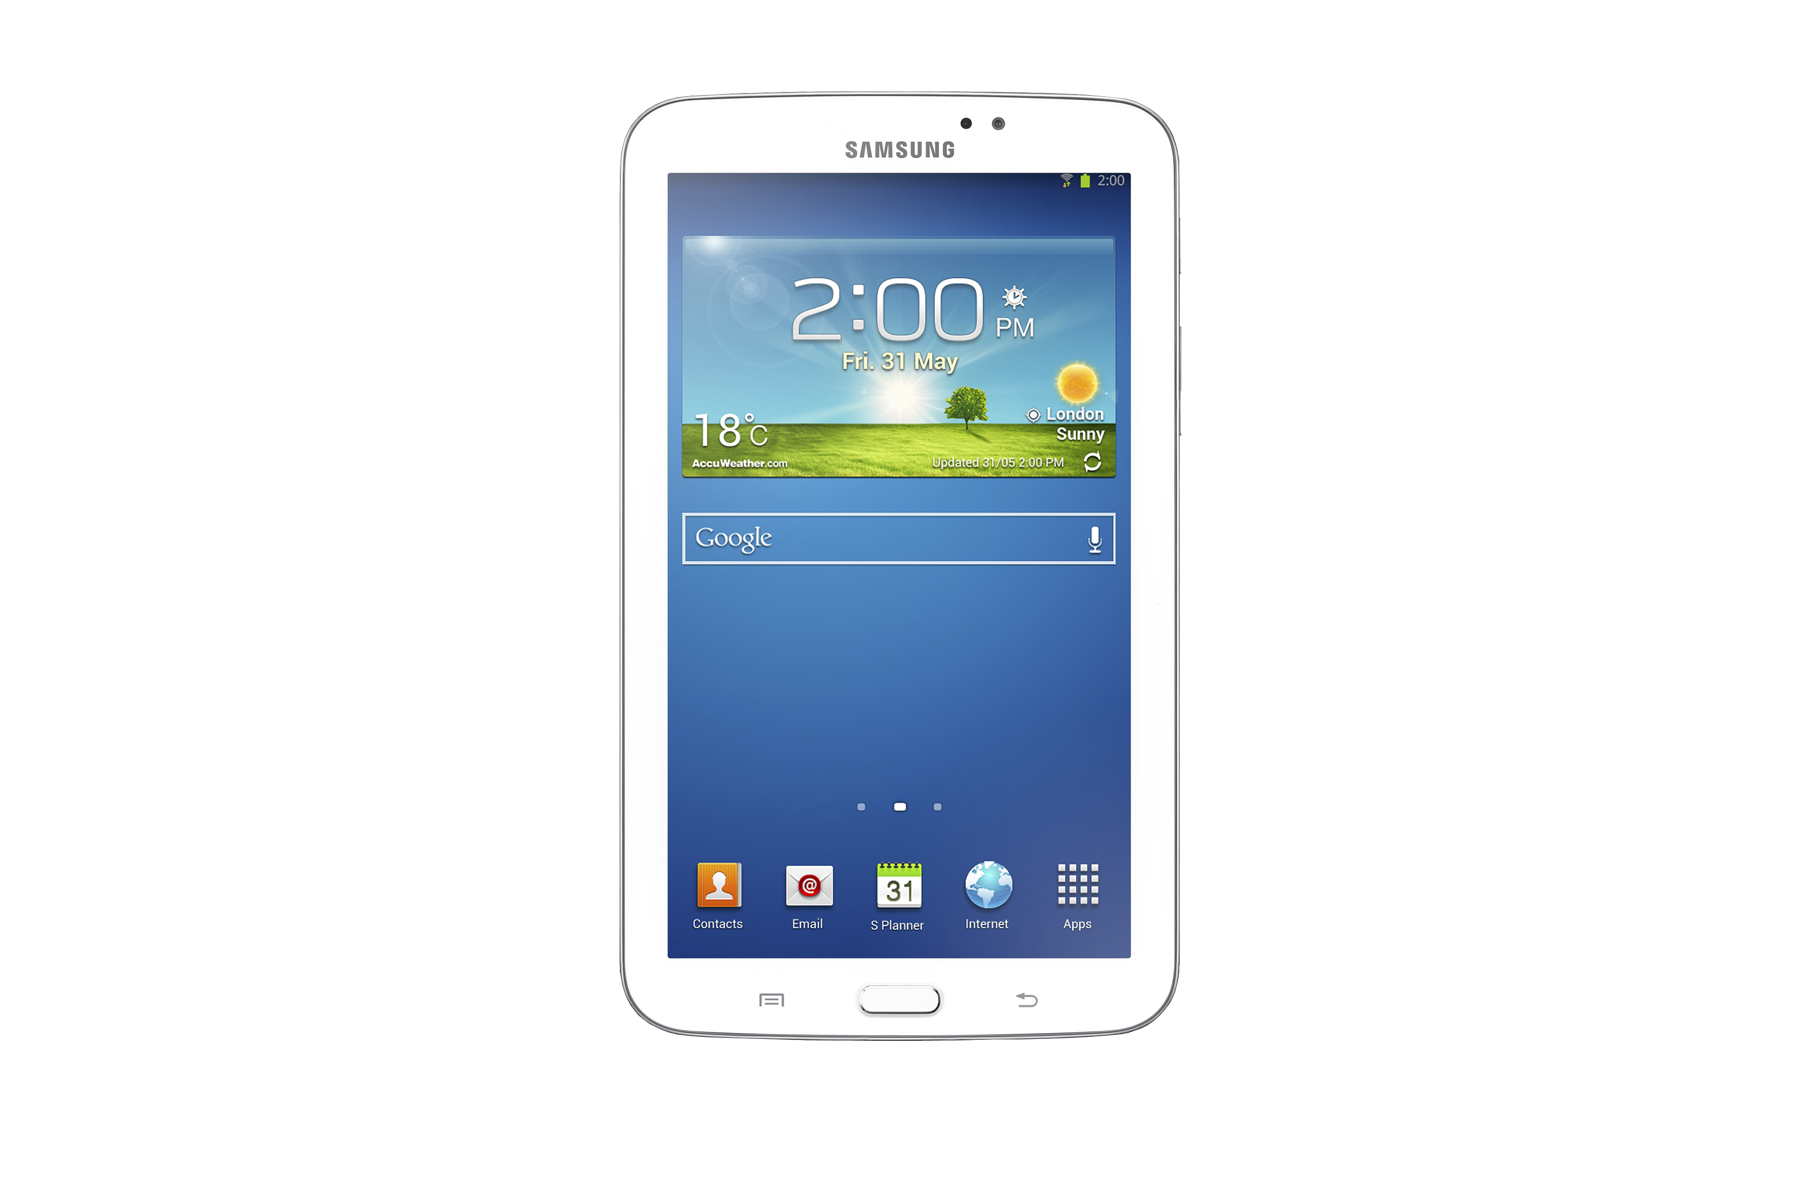 SM-T210 Galaxy Tab 3 7.0 (White)